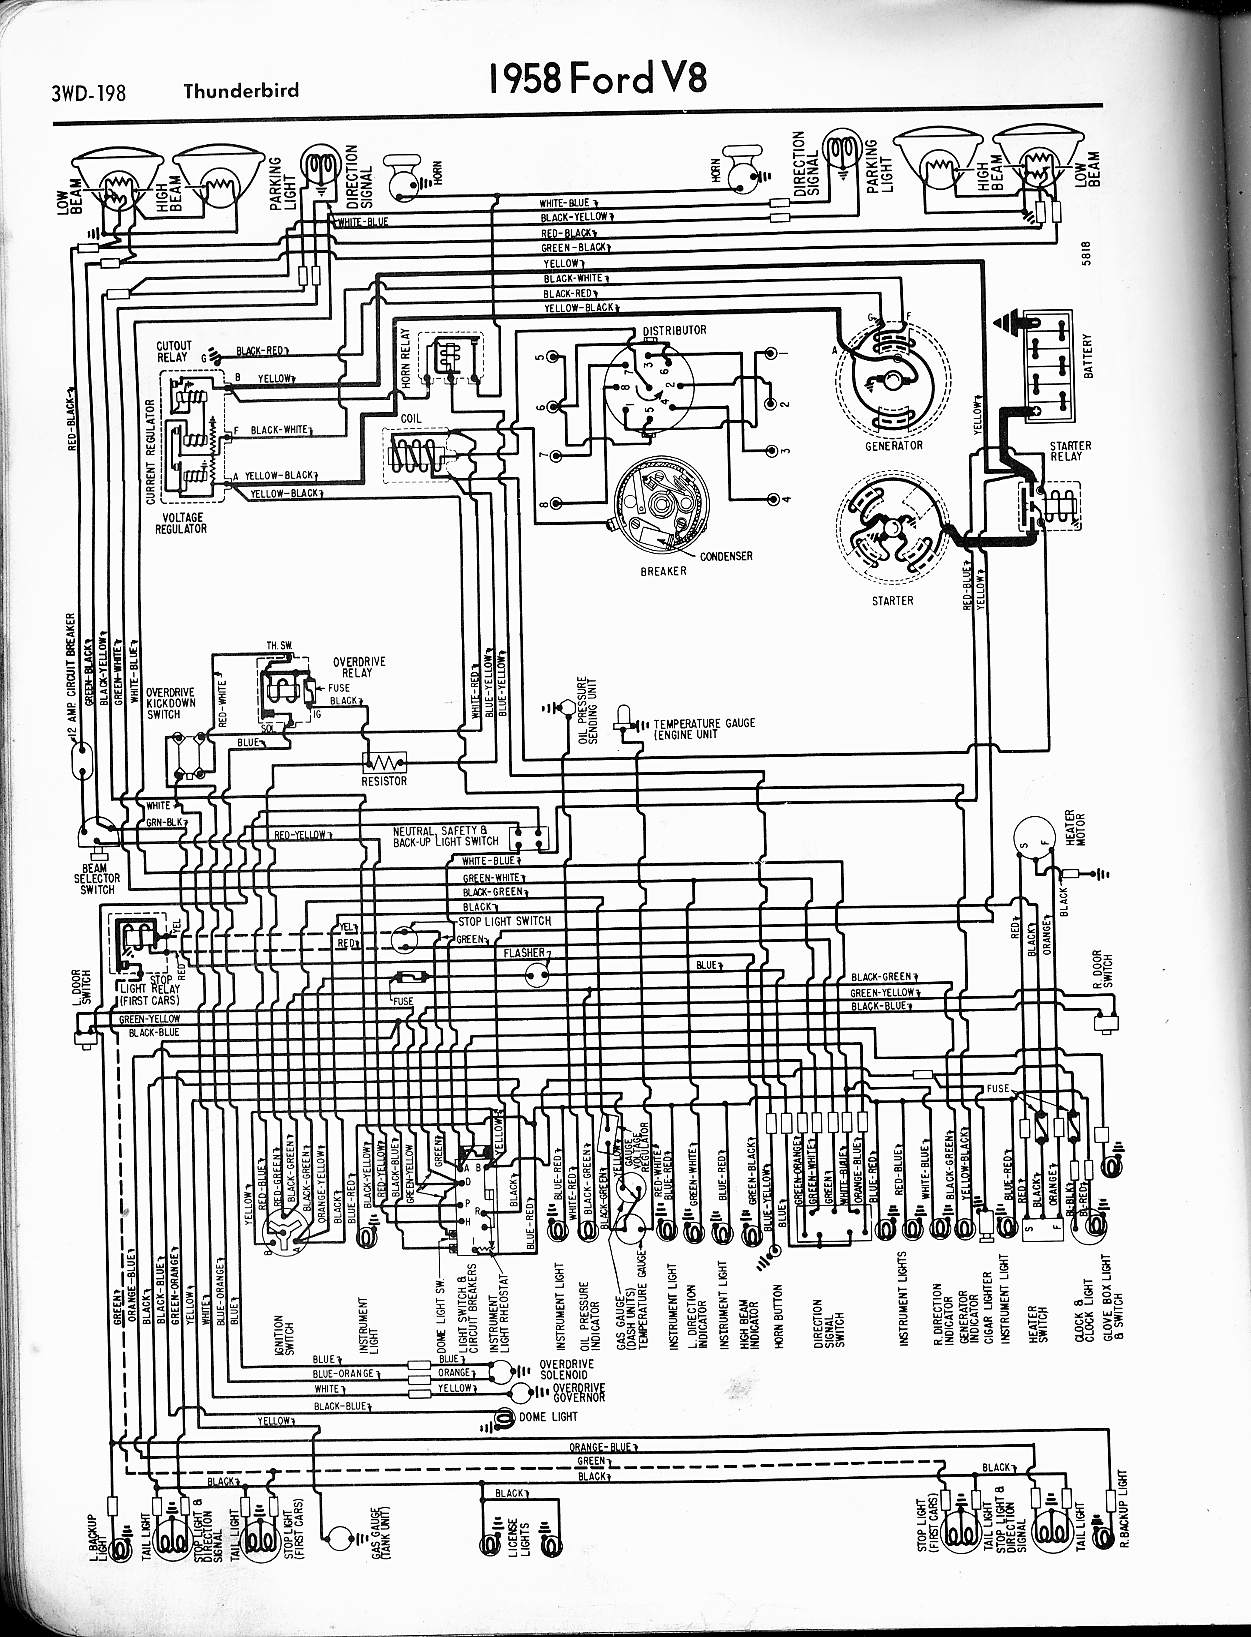 corvette headlight wiring further 1955 ford thunderbird wiring rh lsoncology co 1966 ford thunderbird wiring diagram 1964 ford thunderbird convertible wiring diagram